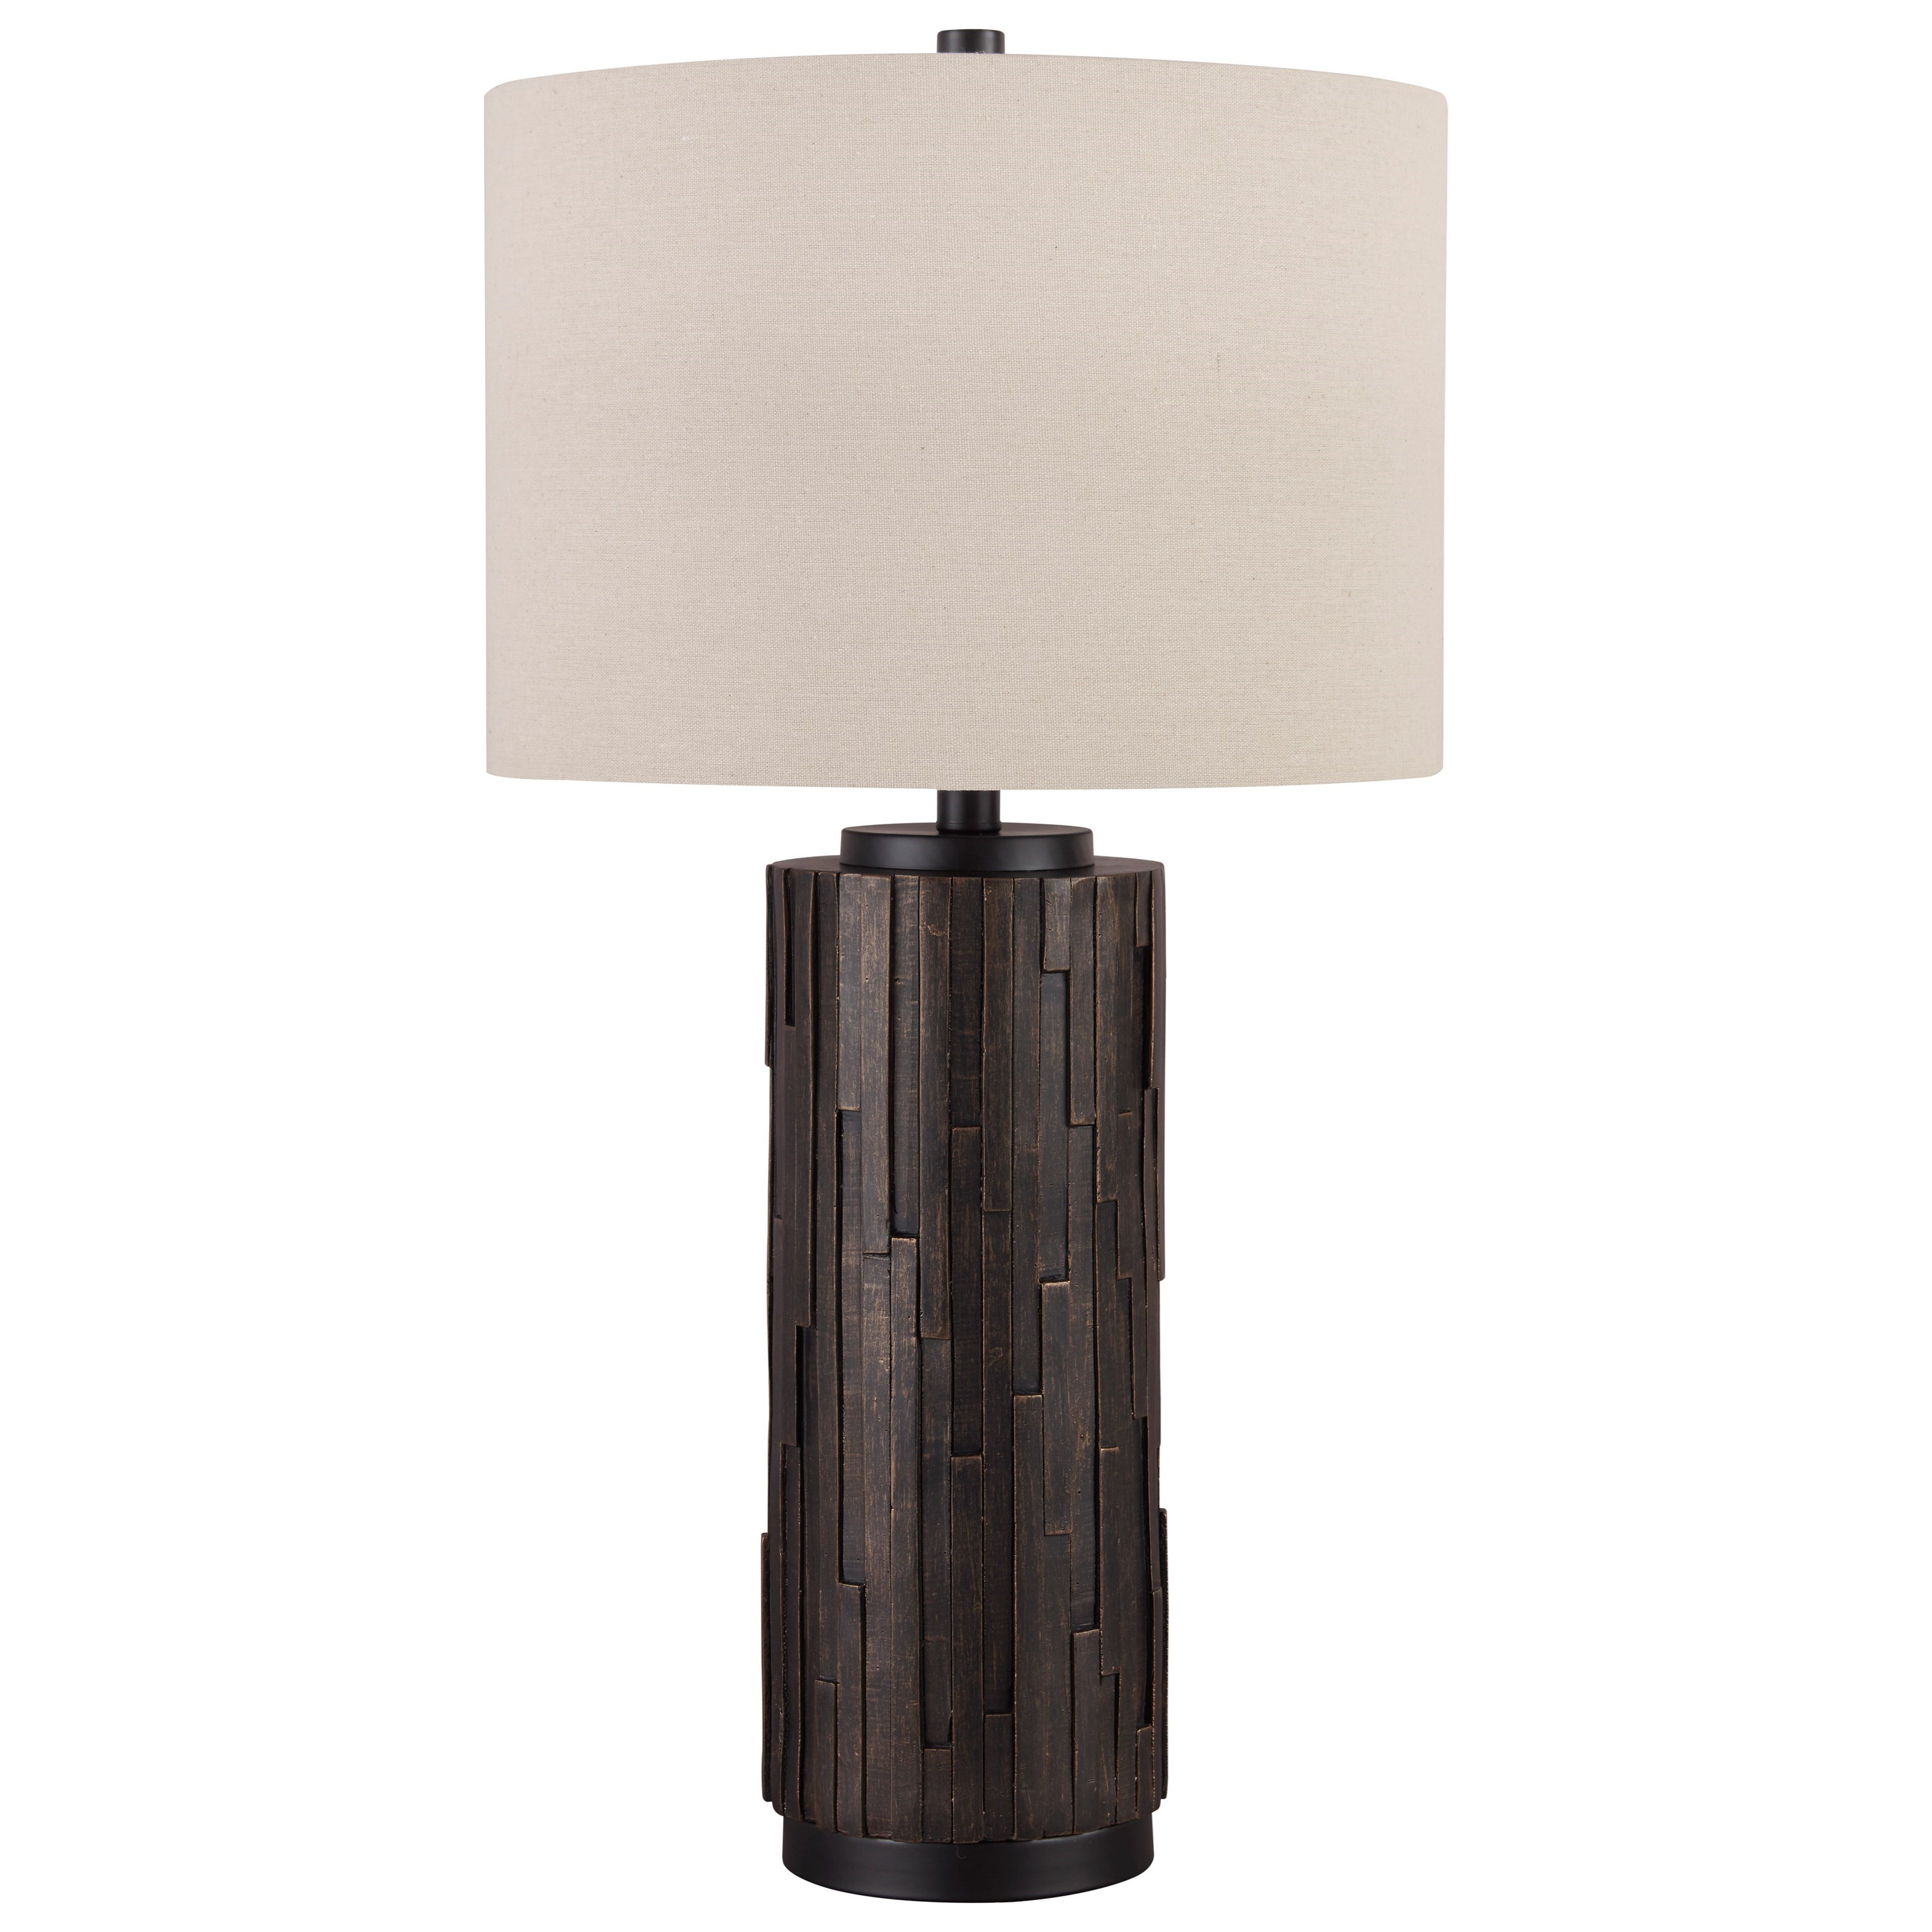 Lamps - Contemporary Makya Black/Gold Resin Table Lamp by Signature Design by Ashley at Northeast Factory Direct